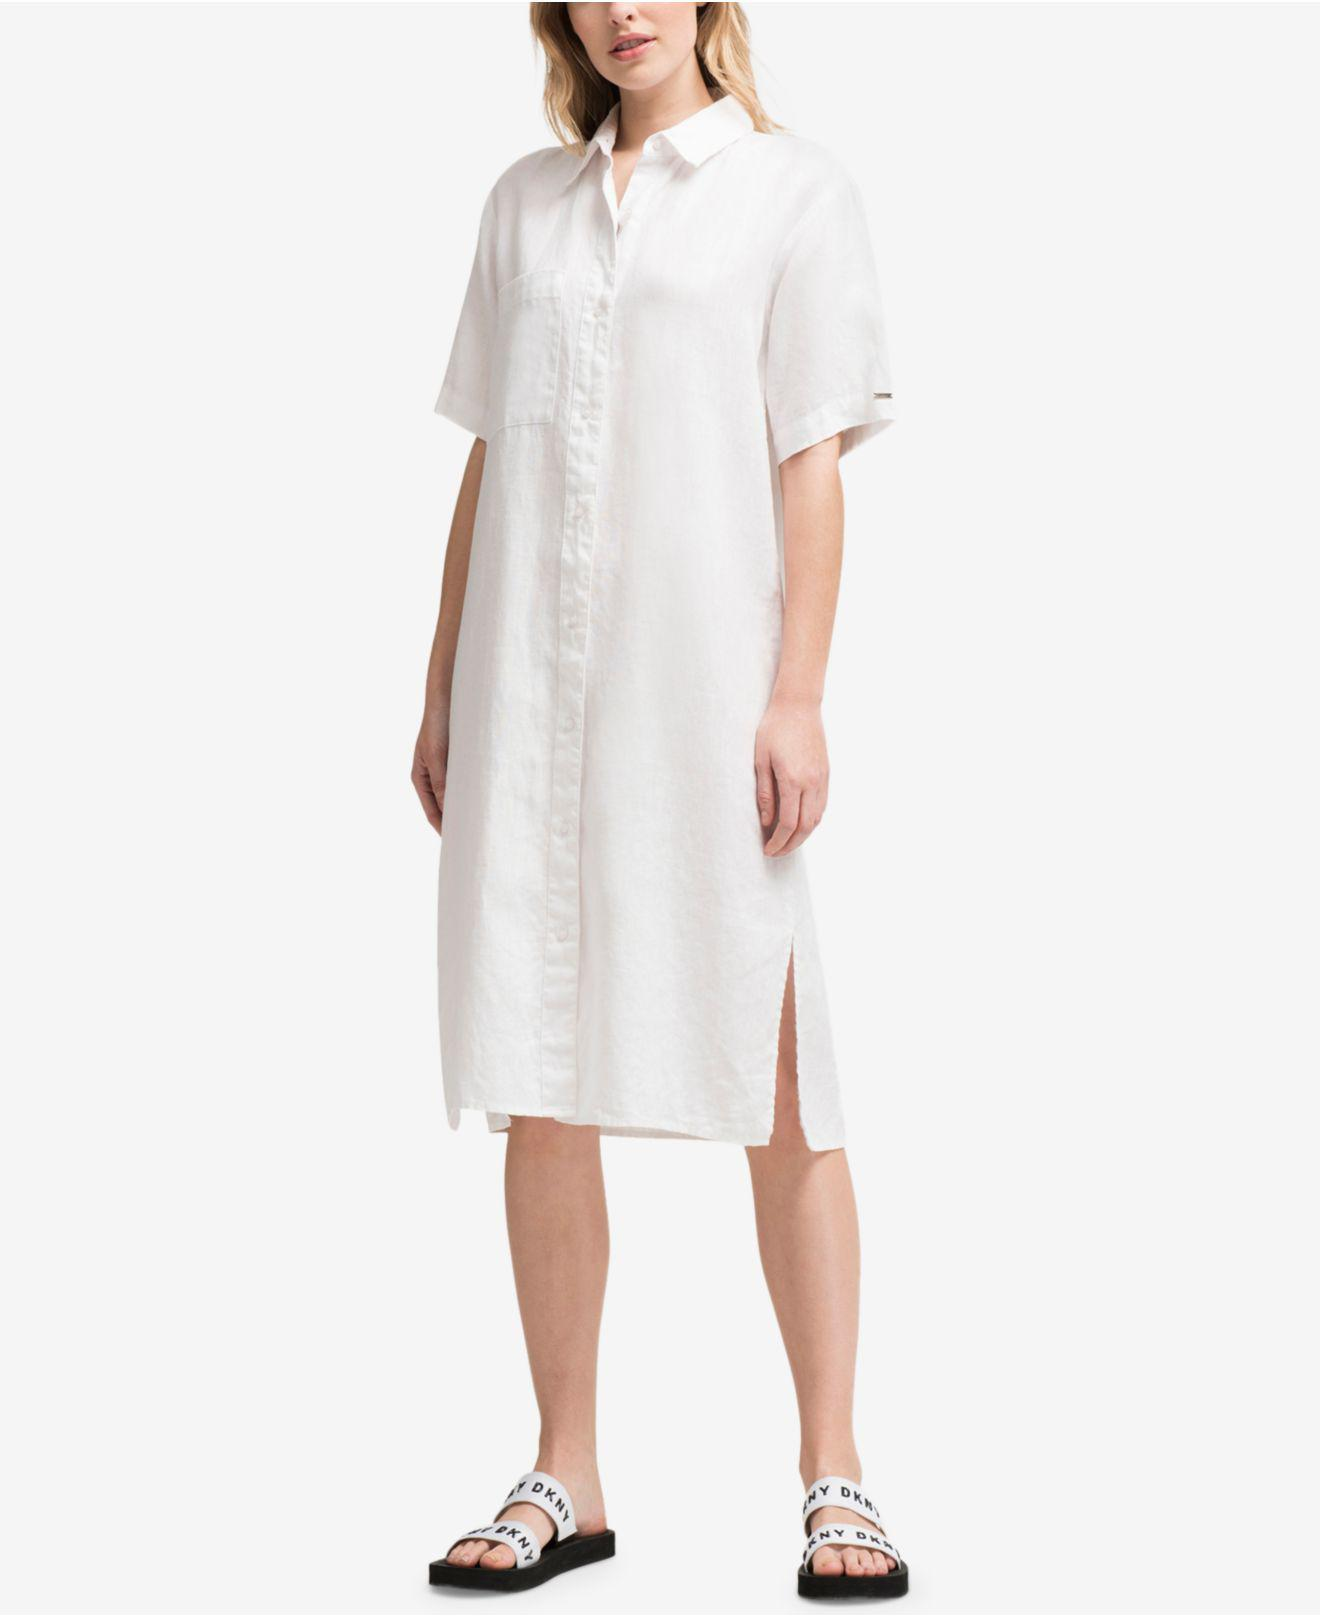 07cf96ed38c Gallery. Previously sold at  Macy s · Women s White Linen Dresses ...